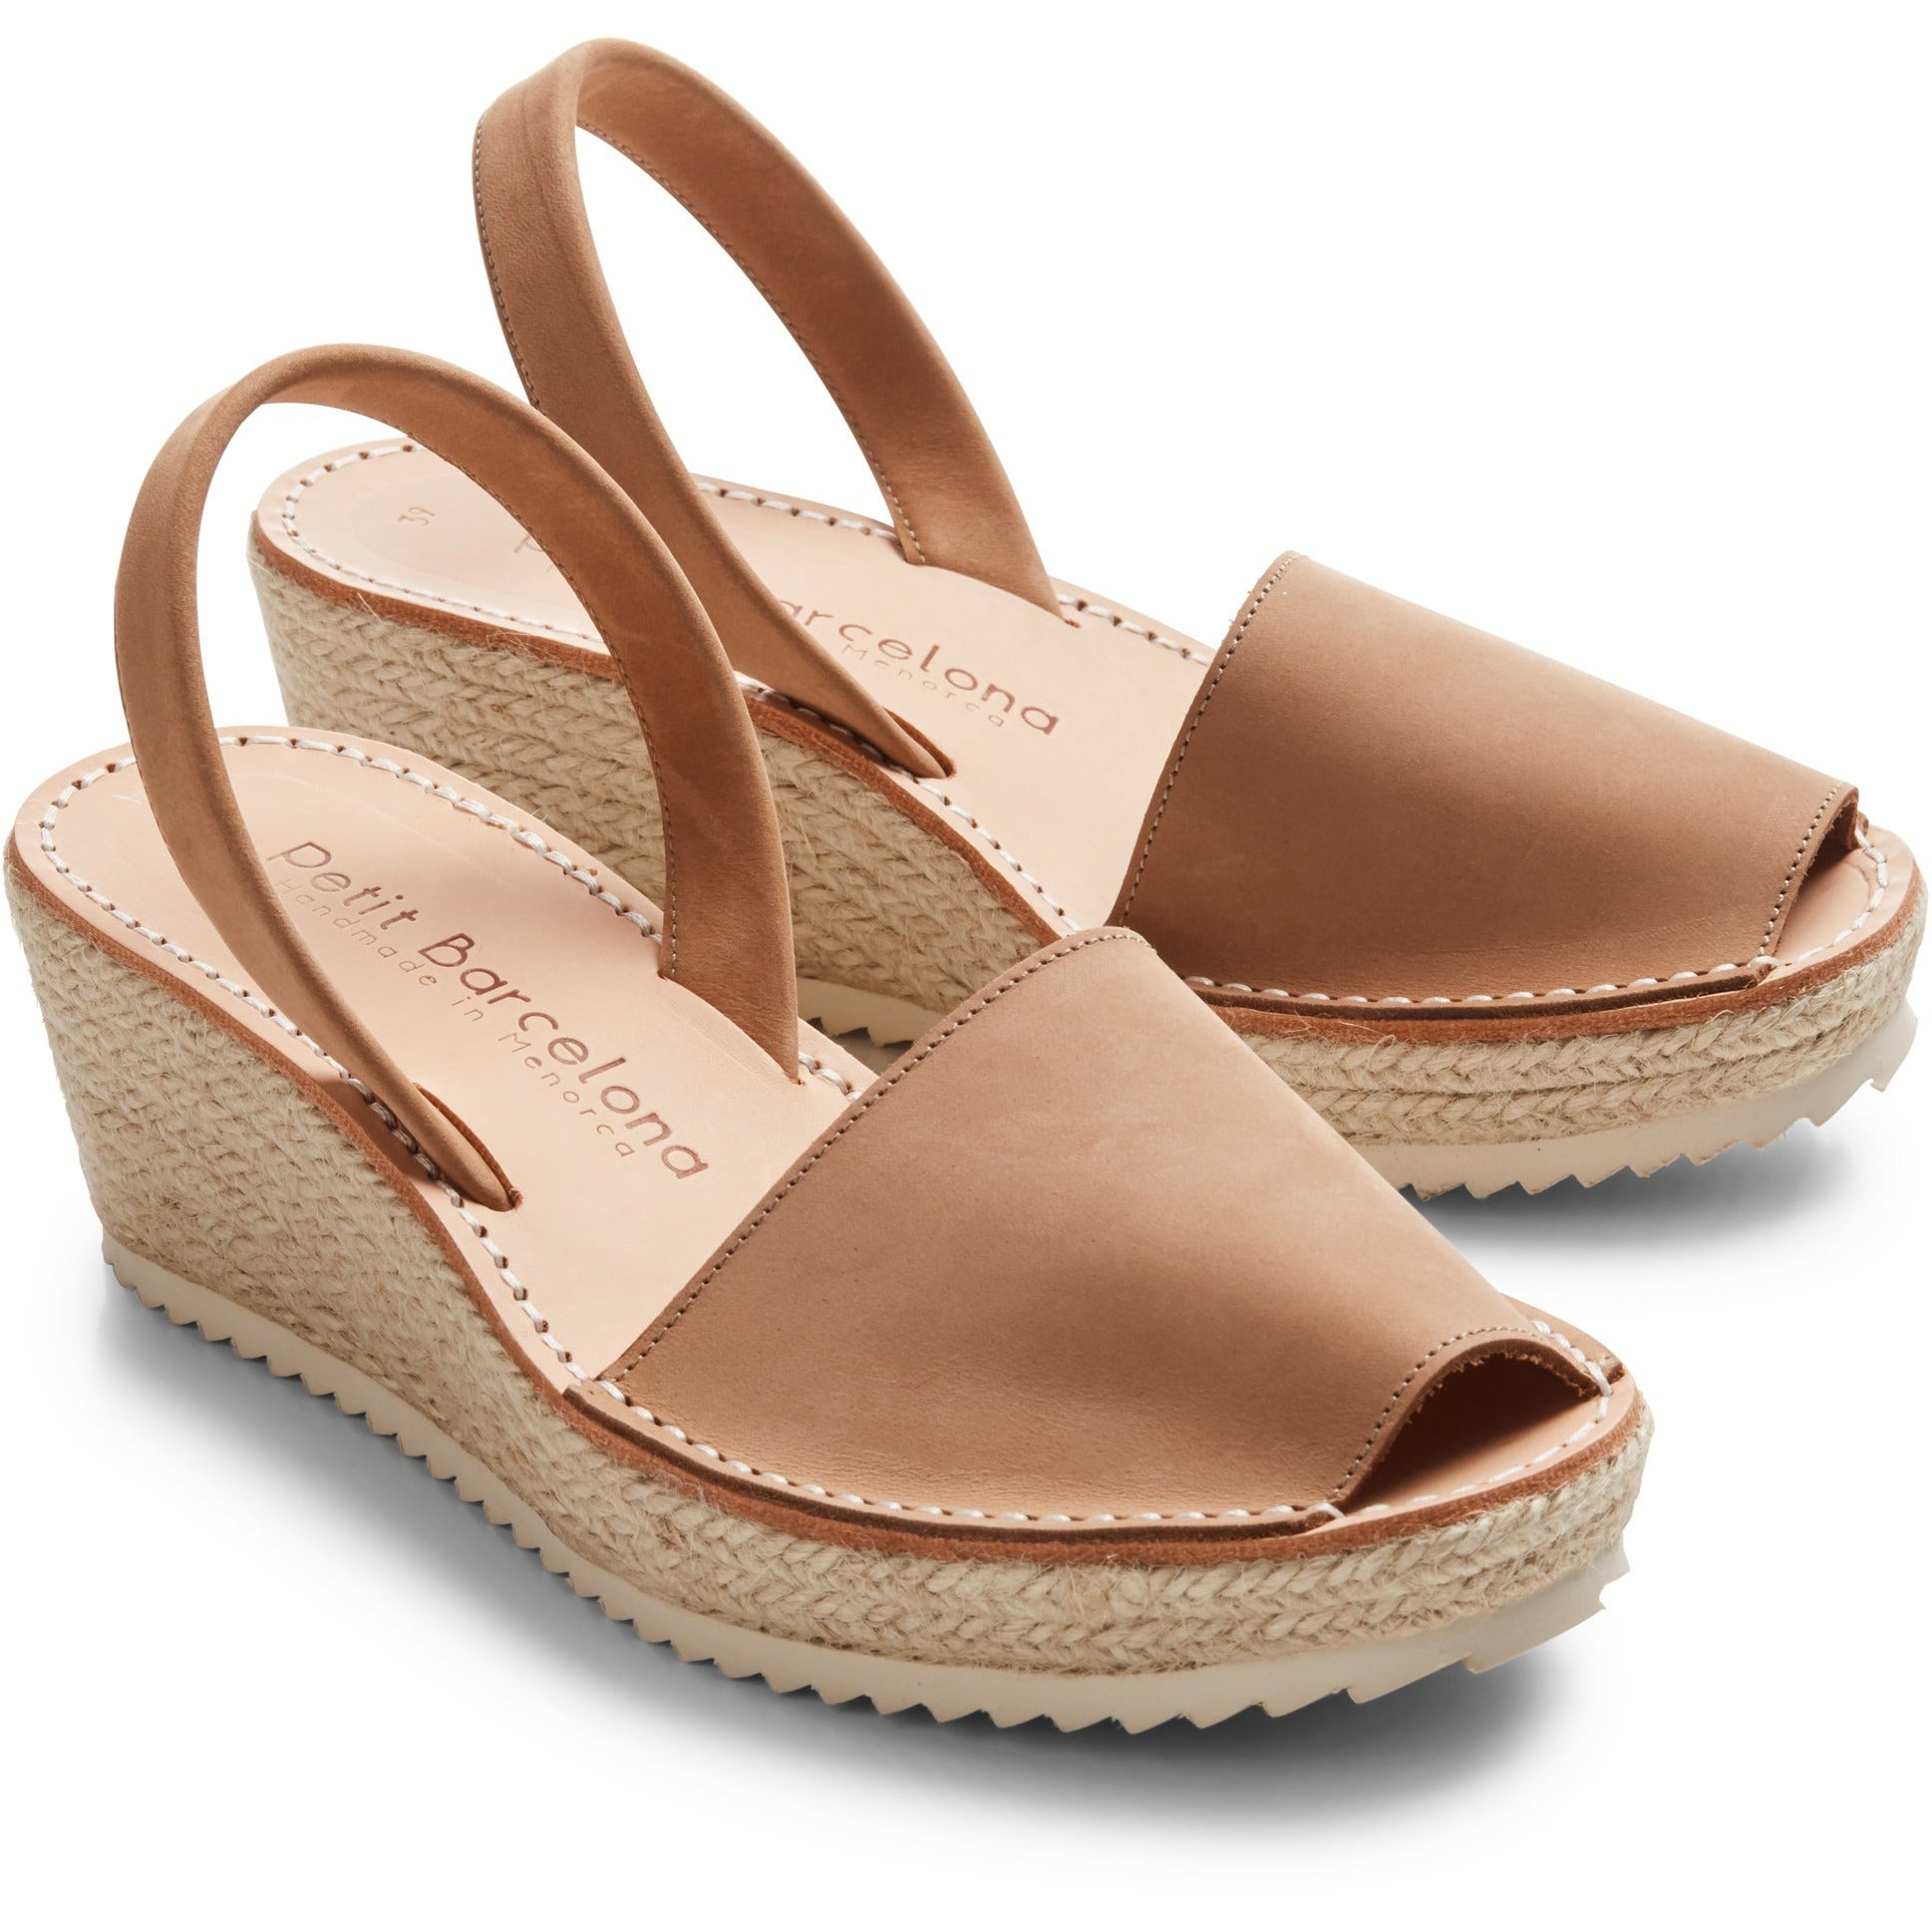 Wedges | Tan Nubuck - PetitBarcelona